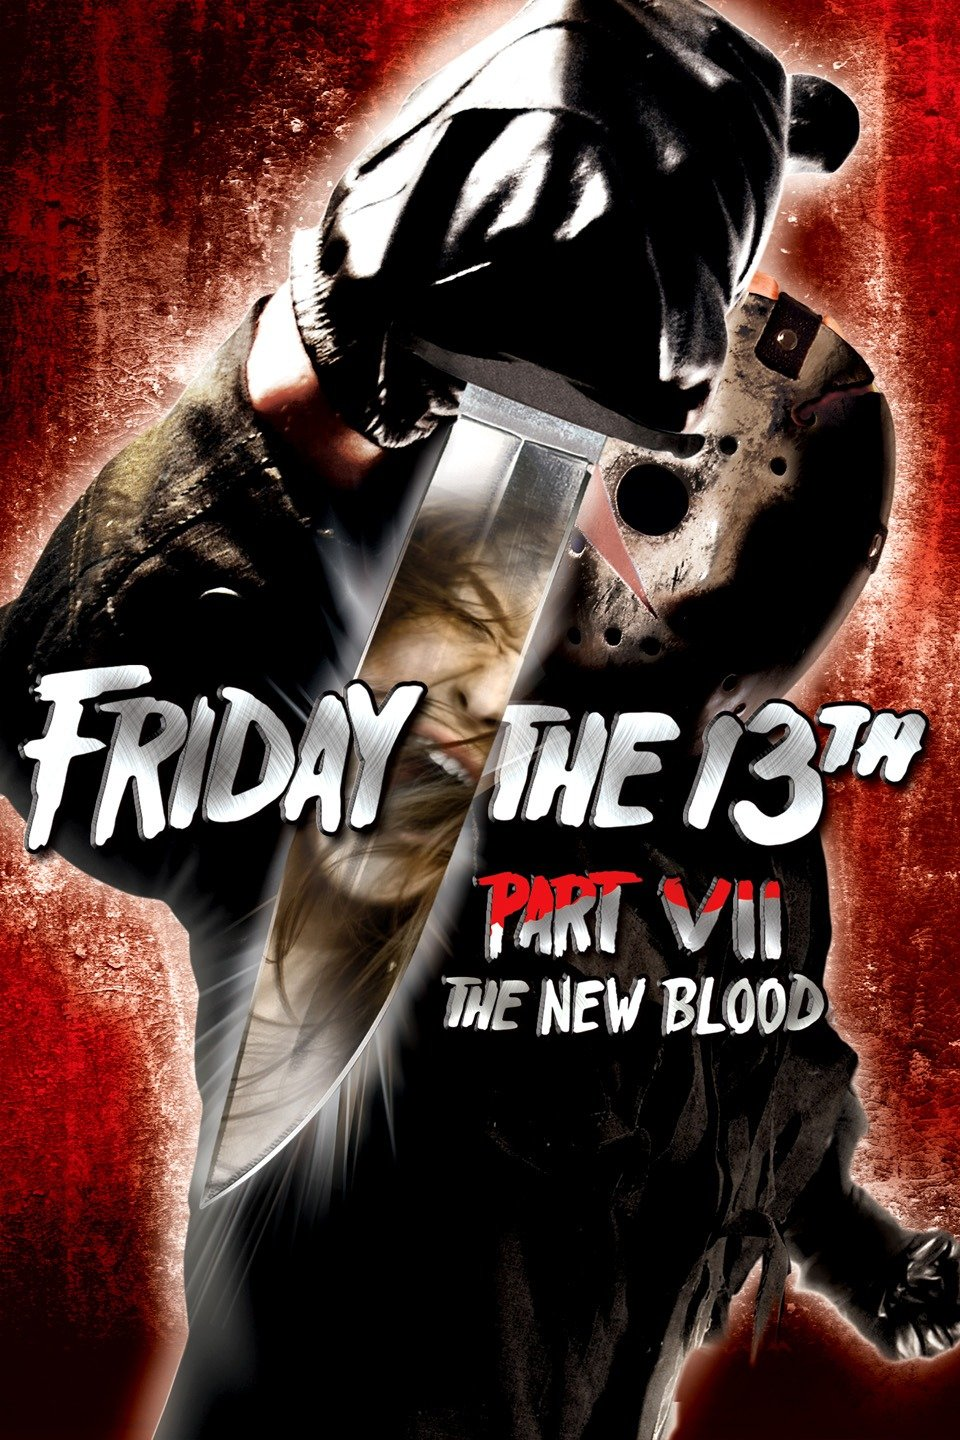 Friday the 13th Part VII: The New Blood-Friday the 13th Part VII: The New Blood